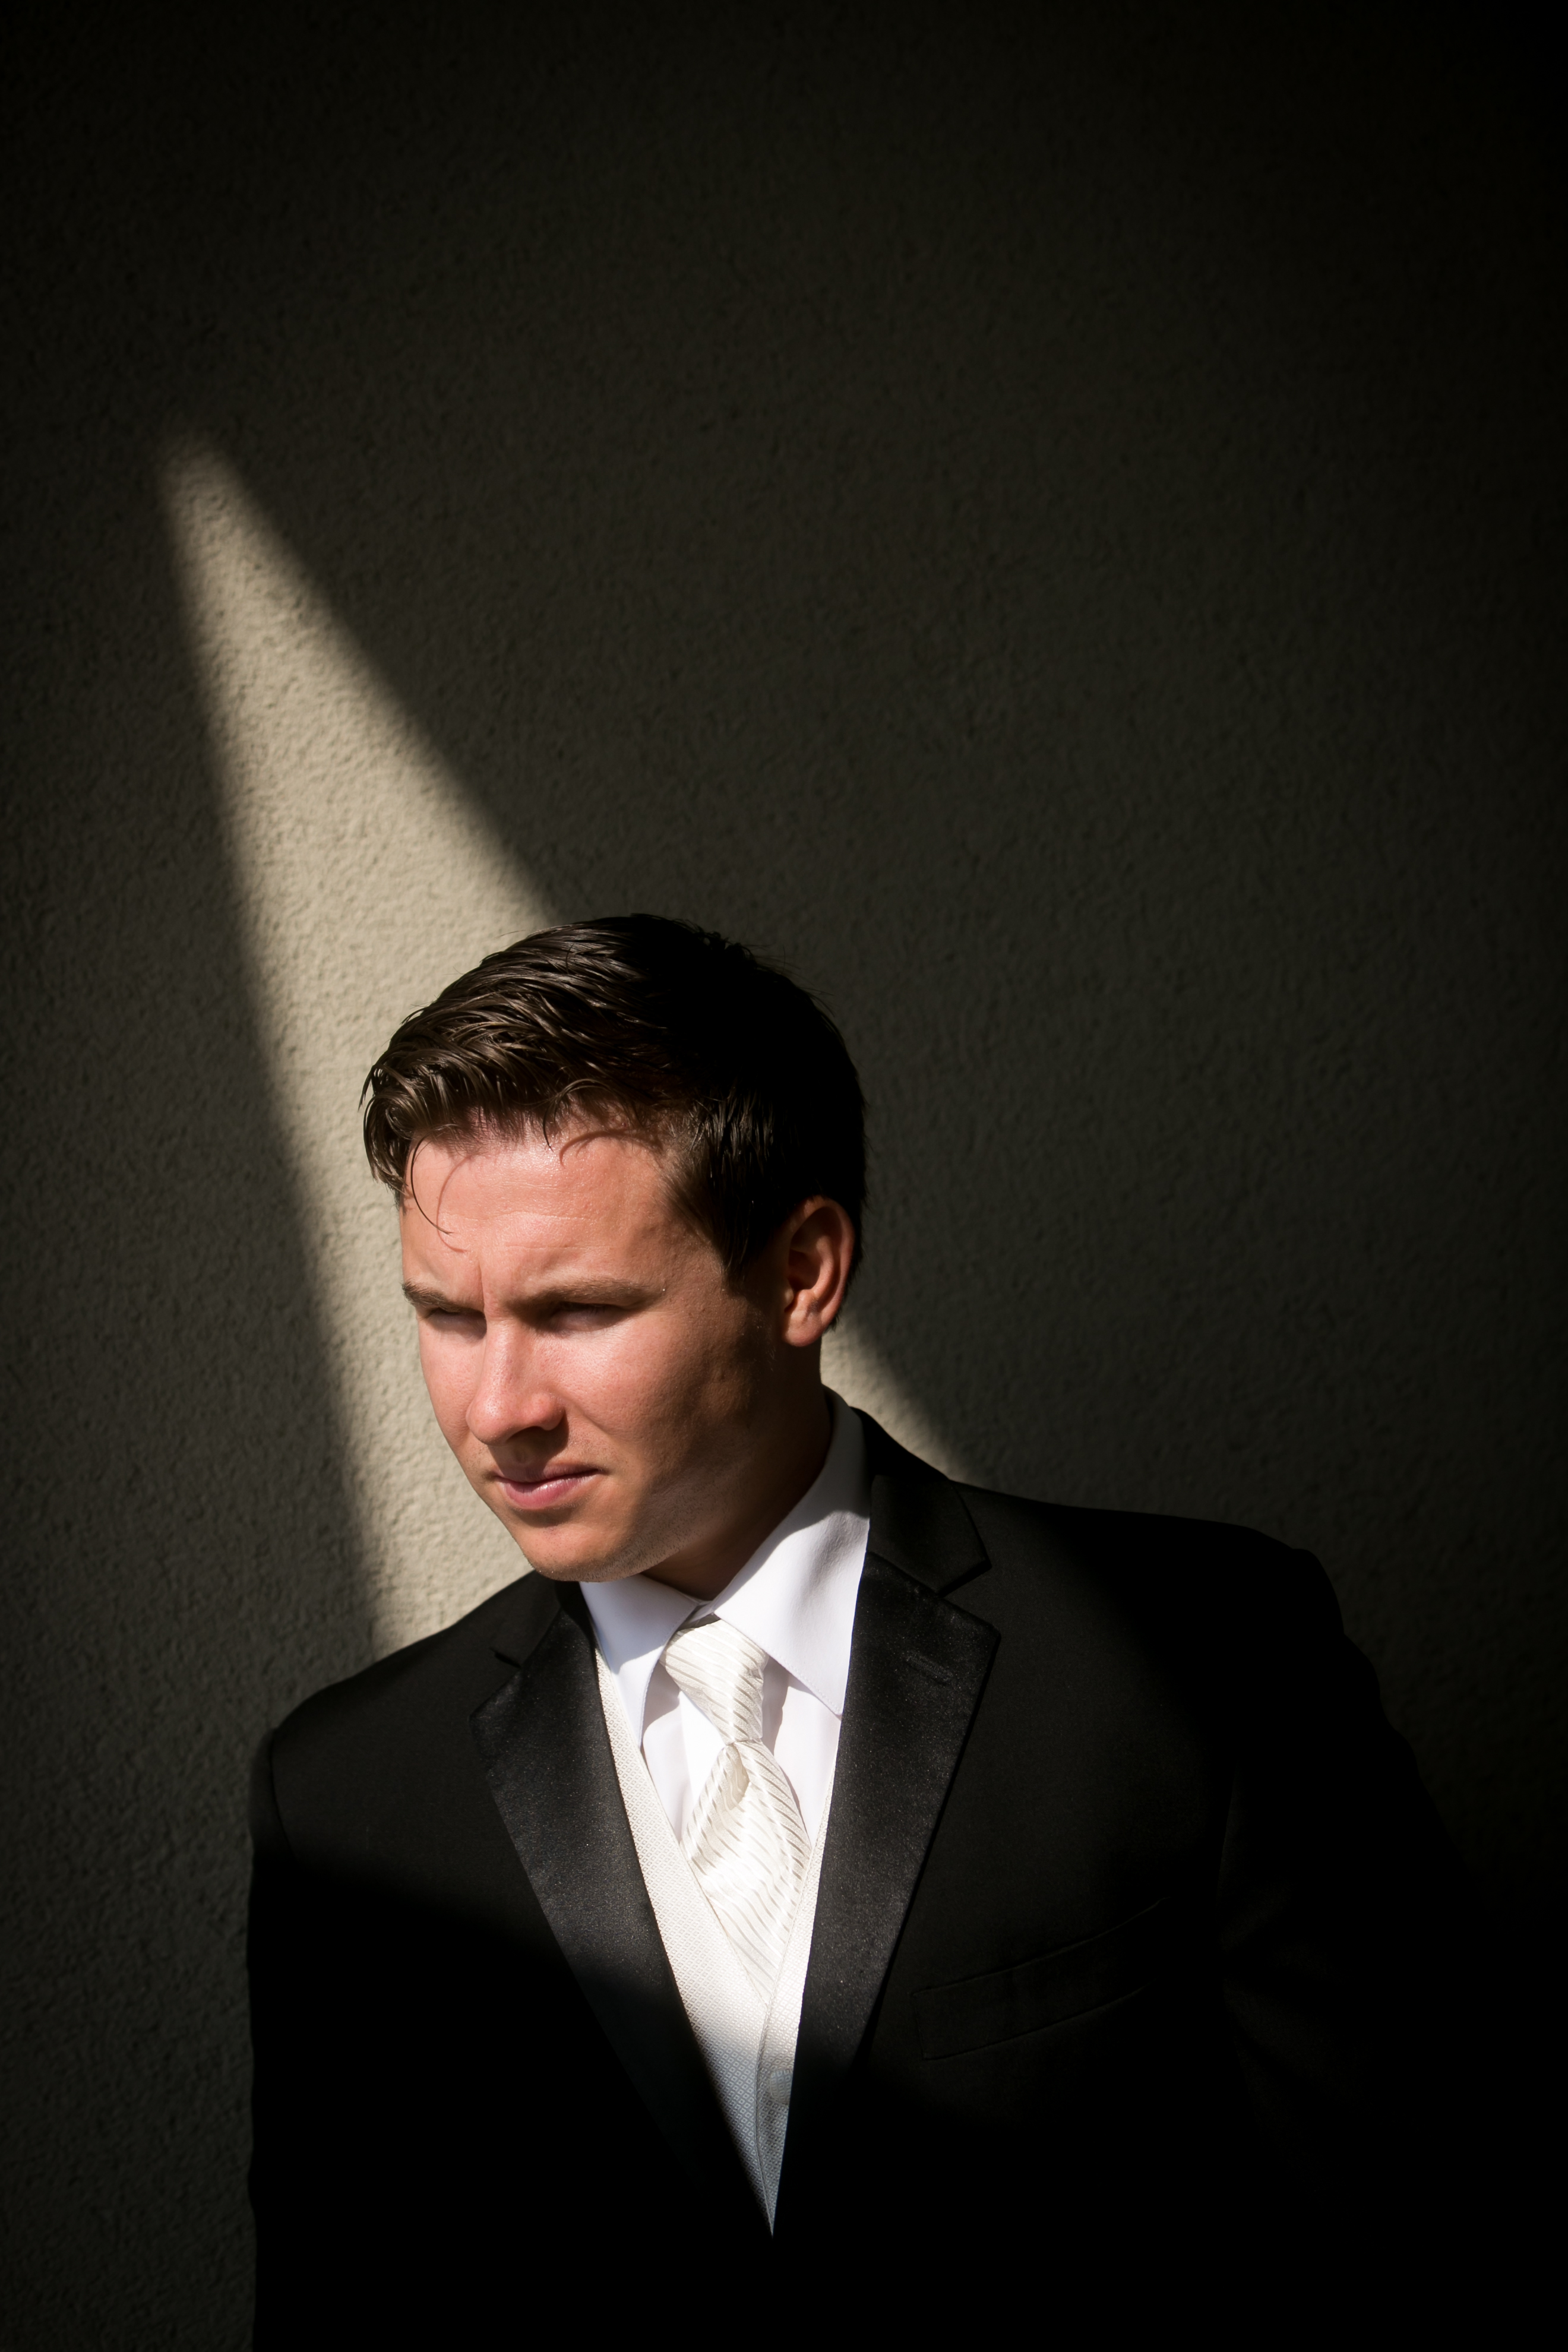 Groom in Light and Shadow